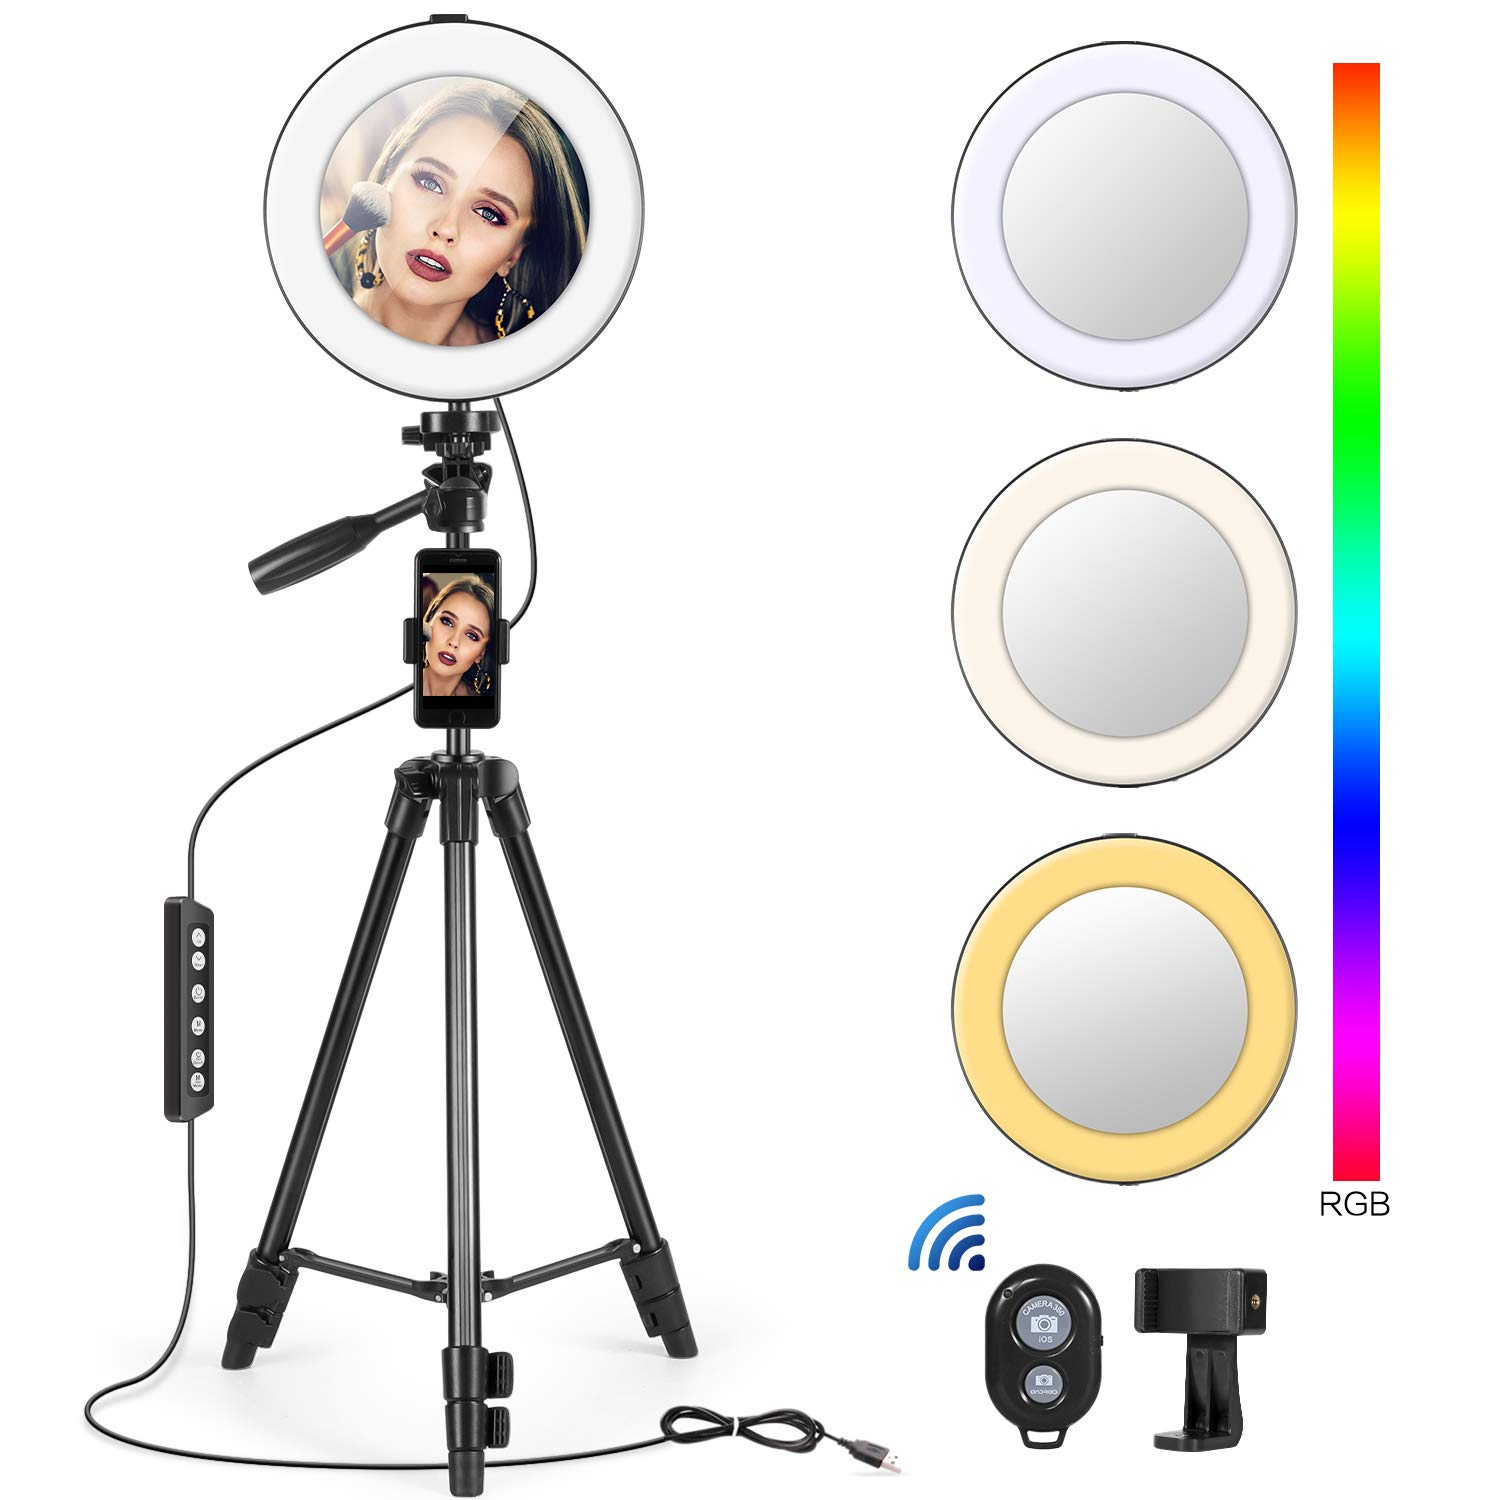 8'' Ring Light with Tripod & 2 Phone Holder, RGB 10 Colors Light for Video Recorder/Makeup/Live Stream/Photography Lights, LED Selfie Ring Light with Detachable Mirror and Remote Control by Kitdine